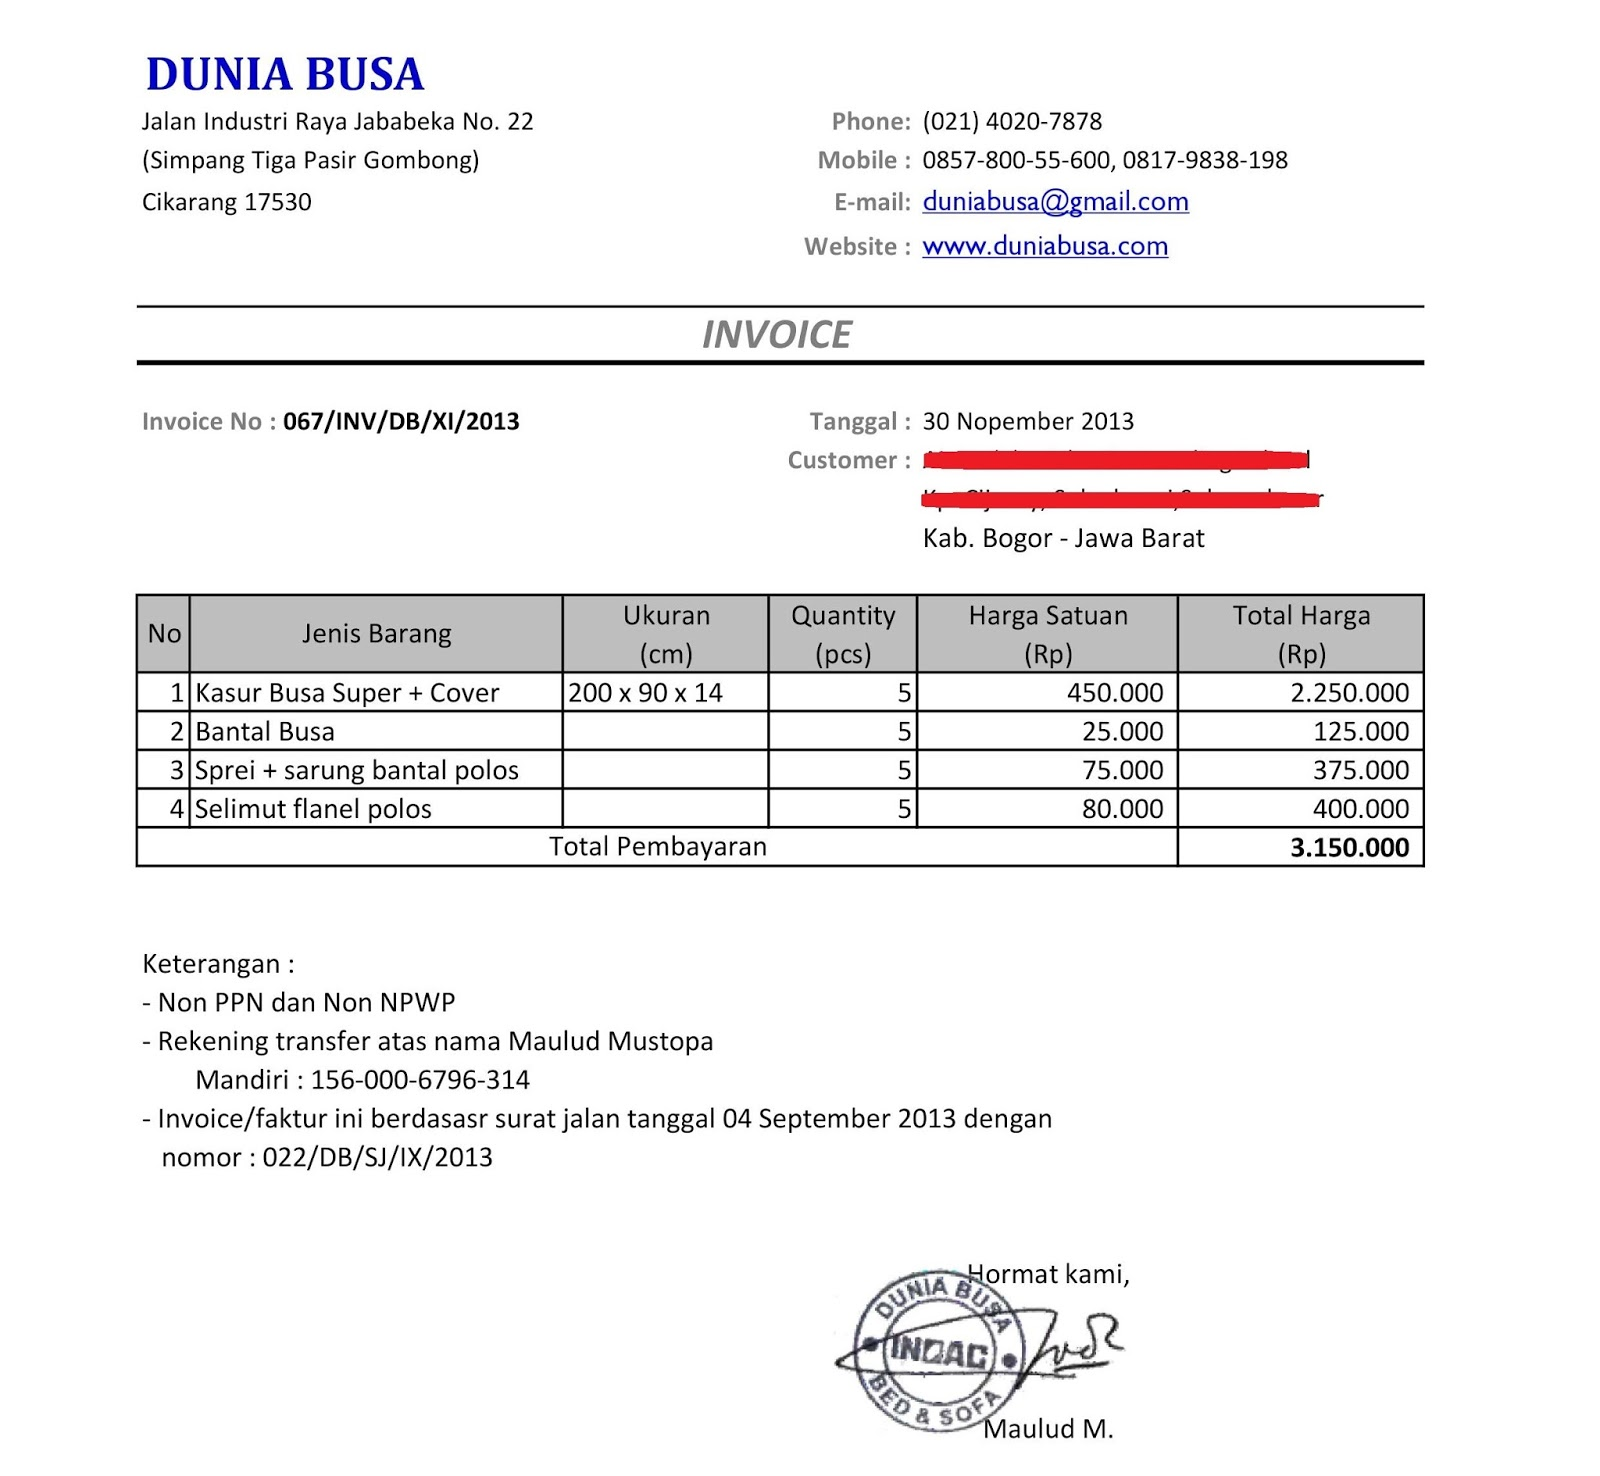 Ultrablogus  Remarkable Free Invoice Online  Create Invoice Online  Invoice Template  With Heavenly Contoh Format Invoice Atau Surat Tagihan  Brankas Arsip  Free Invoice Online With Agreeable Late Payment Fees On Invoices Also Invoice Pdf Download In Addition Sample Cleaning Invoice And Pro Forma Invoicing As Well As Invoice Payable To Additionally Incorrect Invoice From Sklepco With Ultrablogus  Heavenly Free Invoice Online  Create Invoice Online  Invoice Template  With Agreeable Contoh Format Invoice Atau Surat Tagihan  Brankas Arsip  Free Invoice Online And Remarkable Late Payment Fees On Invoices Also Invoice Pdf Download In Addition Sample Cleaning Invoice From Sklepco